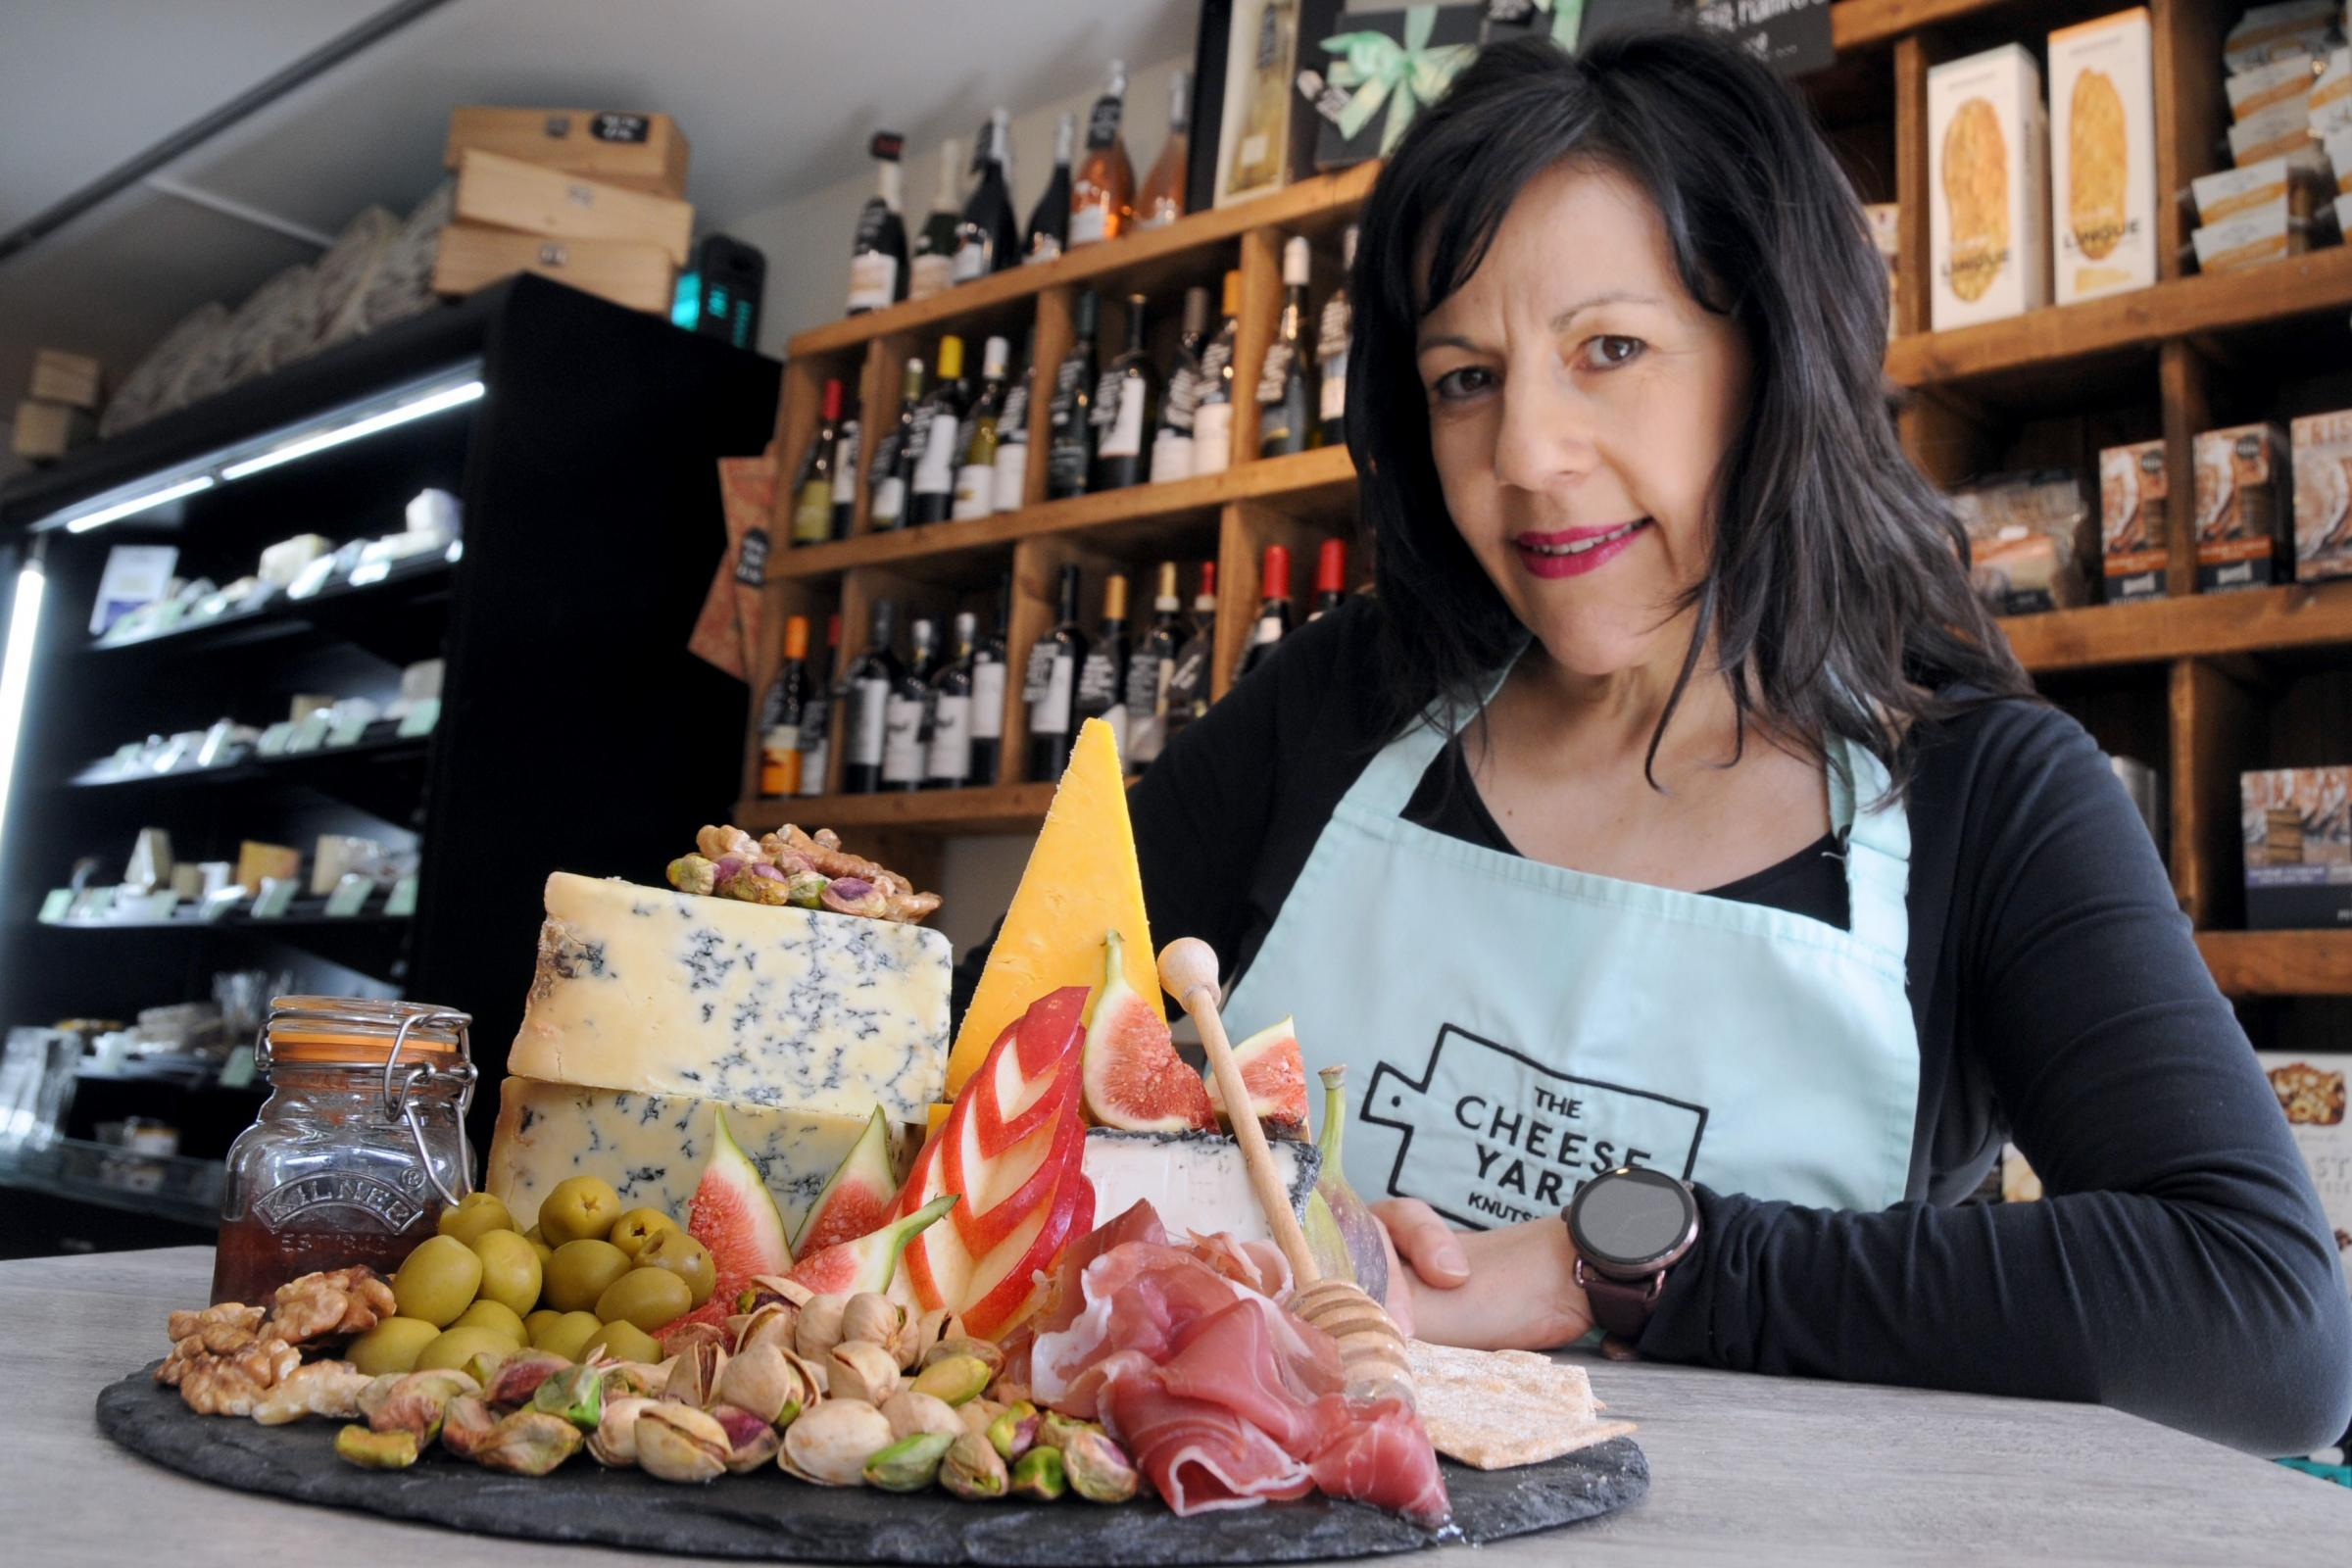 Sarah Peak from The Cheese Yard in King Street is backing the food tour idea